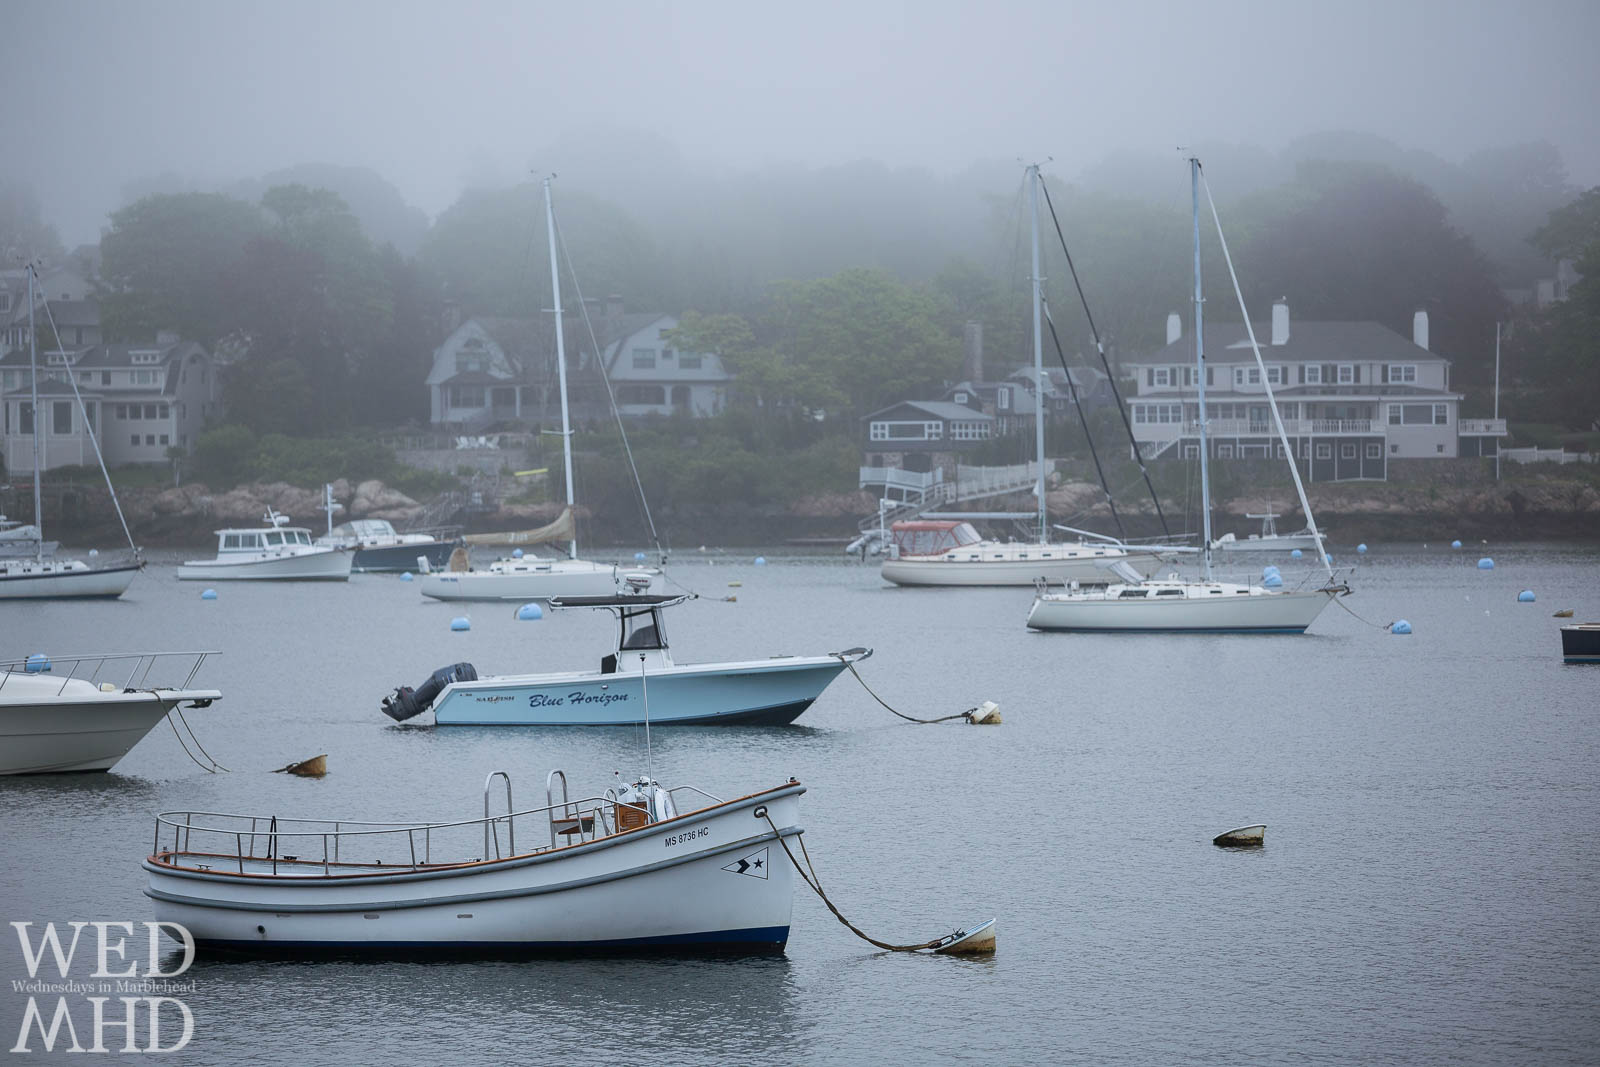 The Dolphin Yacht Club launch and several other boats are seen moored in the fog on a late May morning